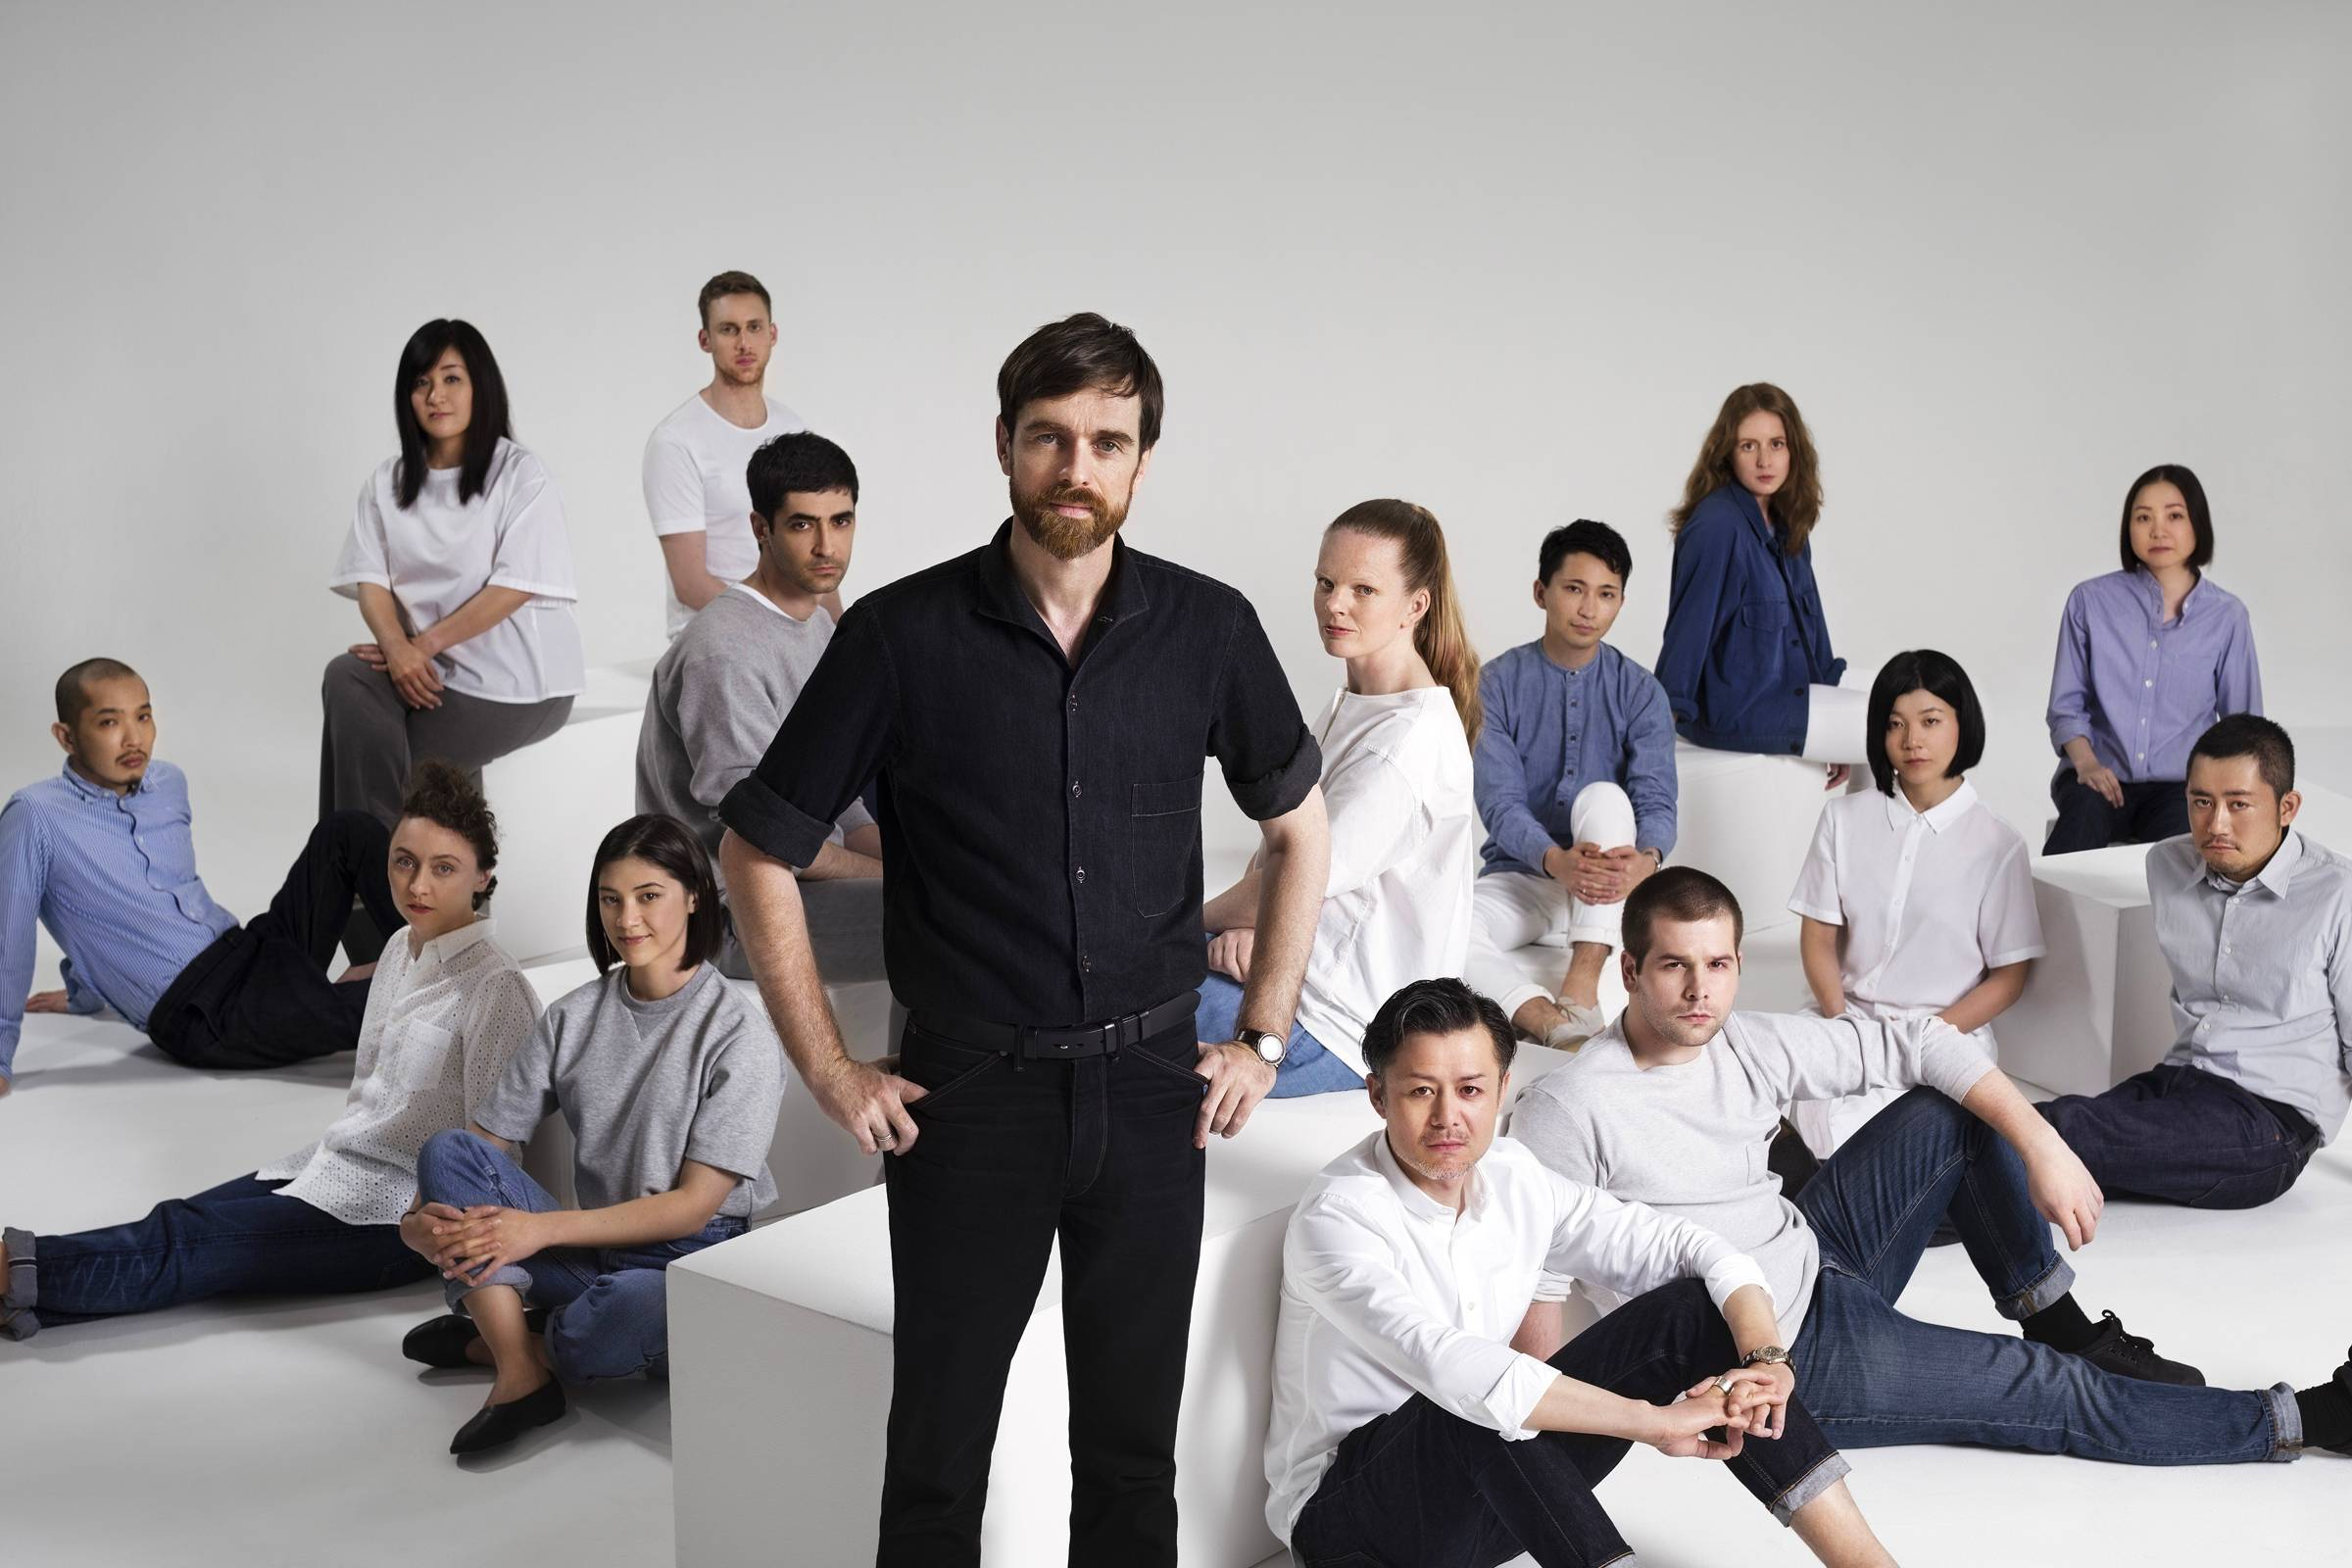 Christophe Lemaire (center), current Artistic Director of Uniqlo Paris R&D Center and Uniqlo U line